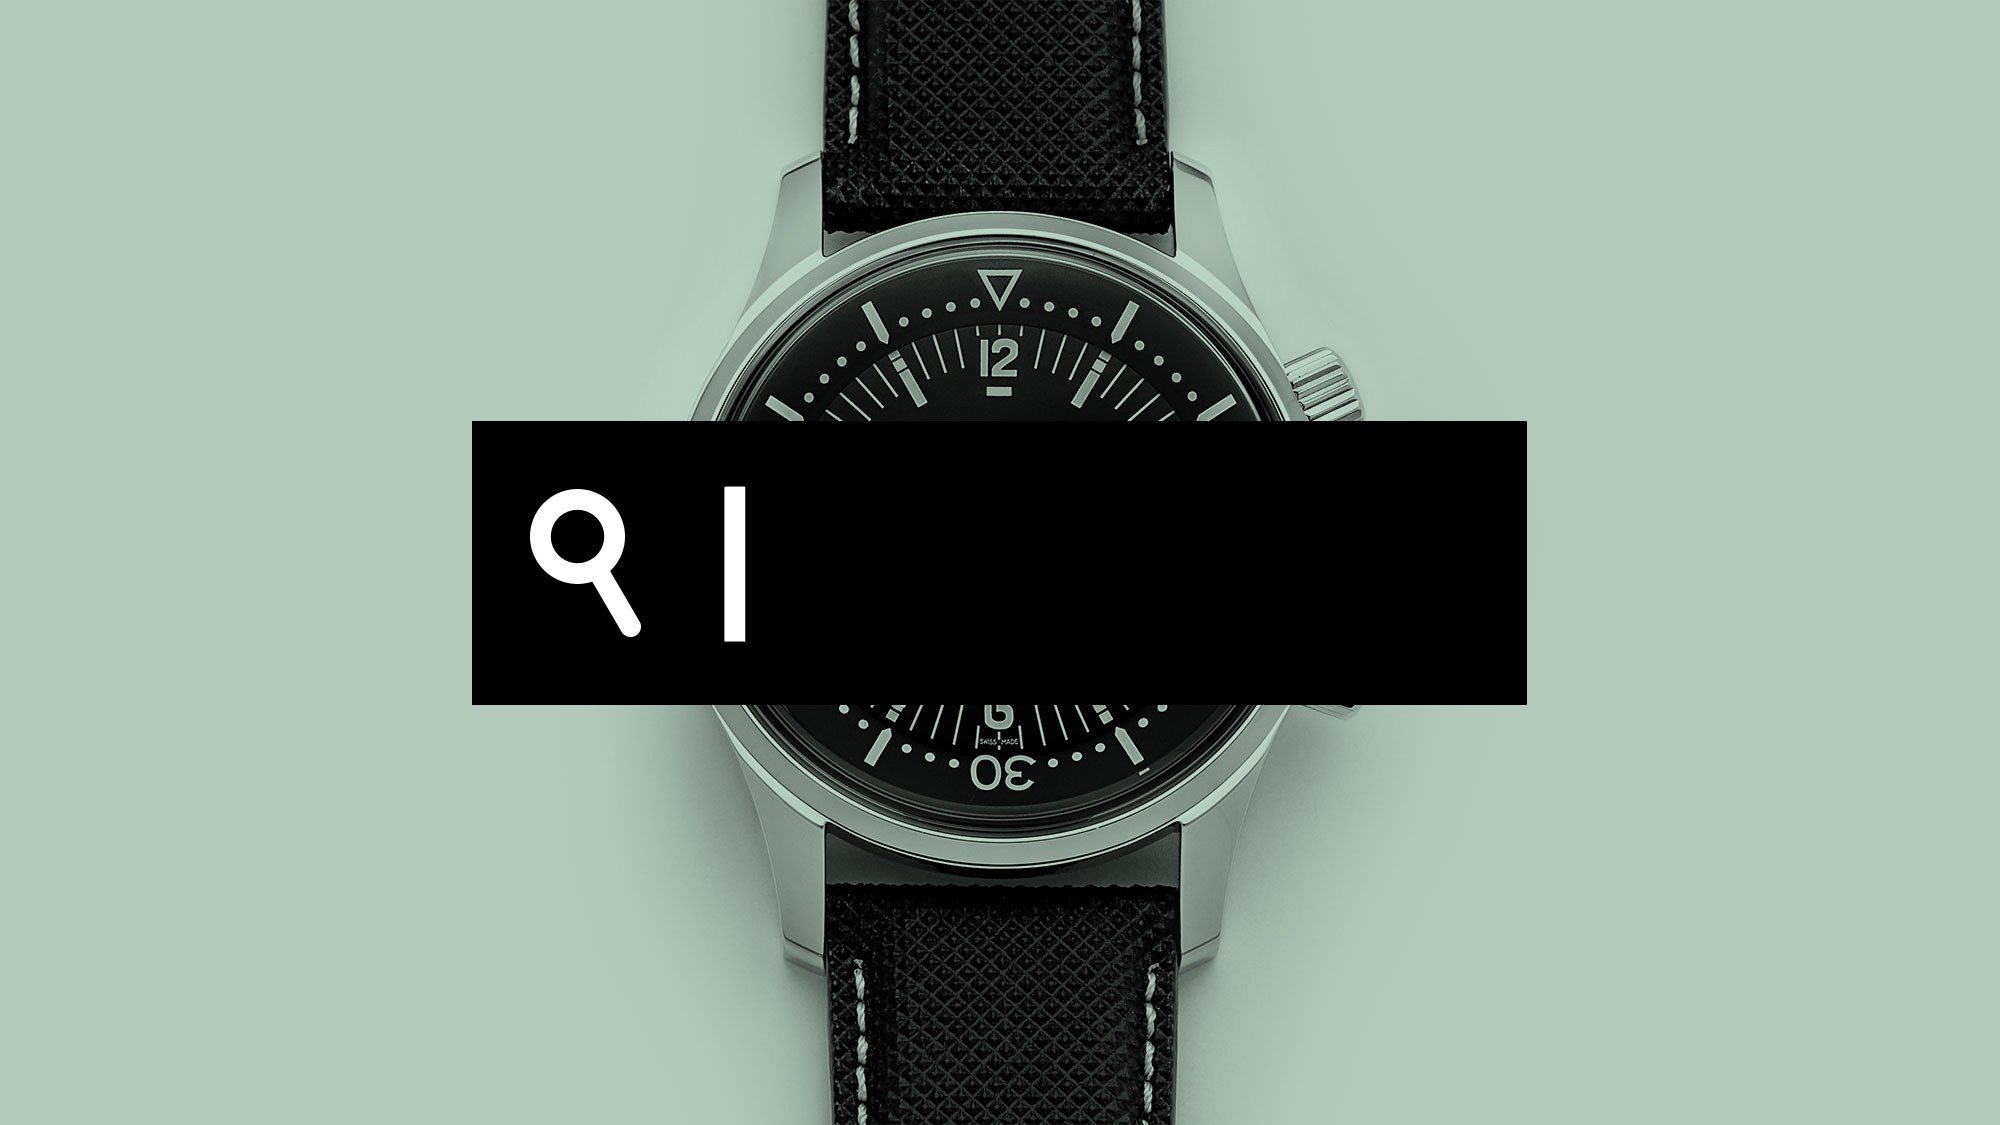 It's easier than ever to buy your perfect watch https://t.co/hH3ei3FpIj https://t.co/ZBCnpfPLiw